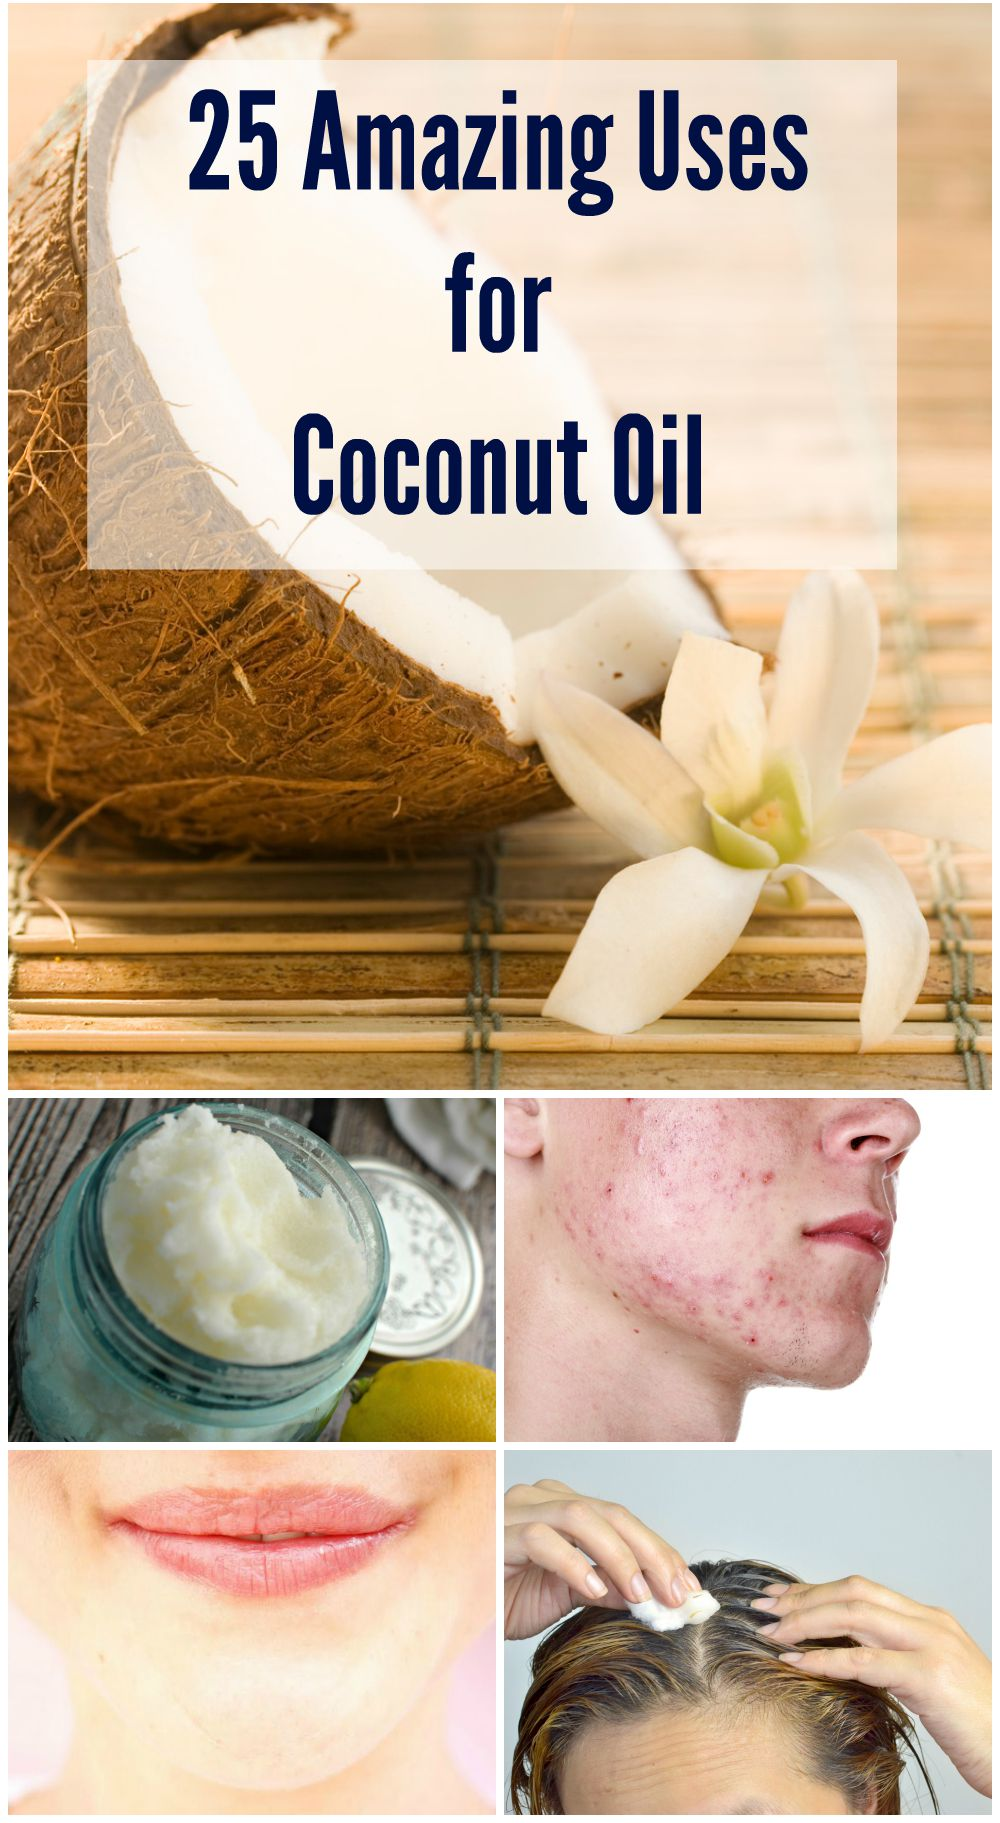 There are many uses for coconut oil. It can kill a wide range of infections, and may also help your body get rid of parasites like lice and tapeworms. It can kill certain viruses, and your body can easily digest it to absorb all its nutrition. And of course it is natural and side-effect free.